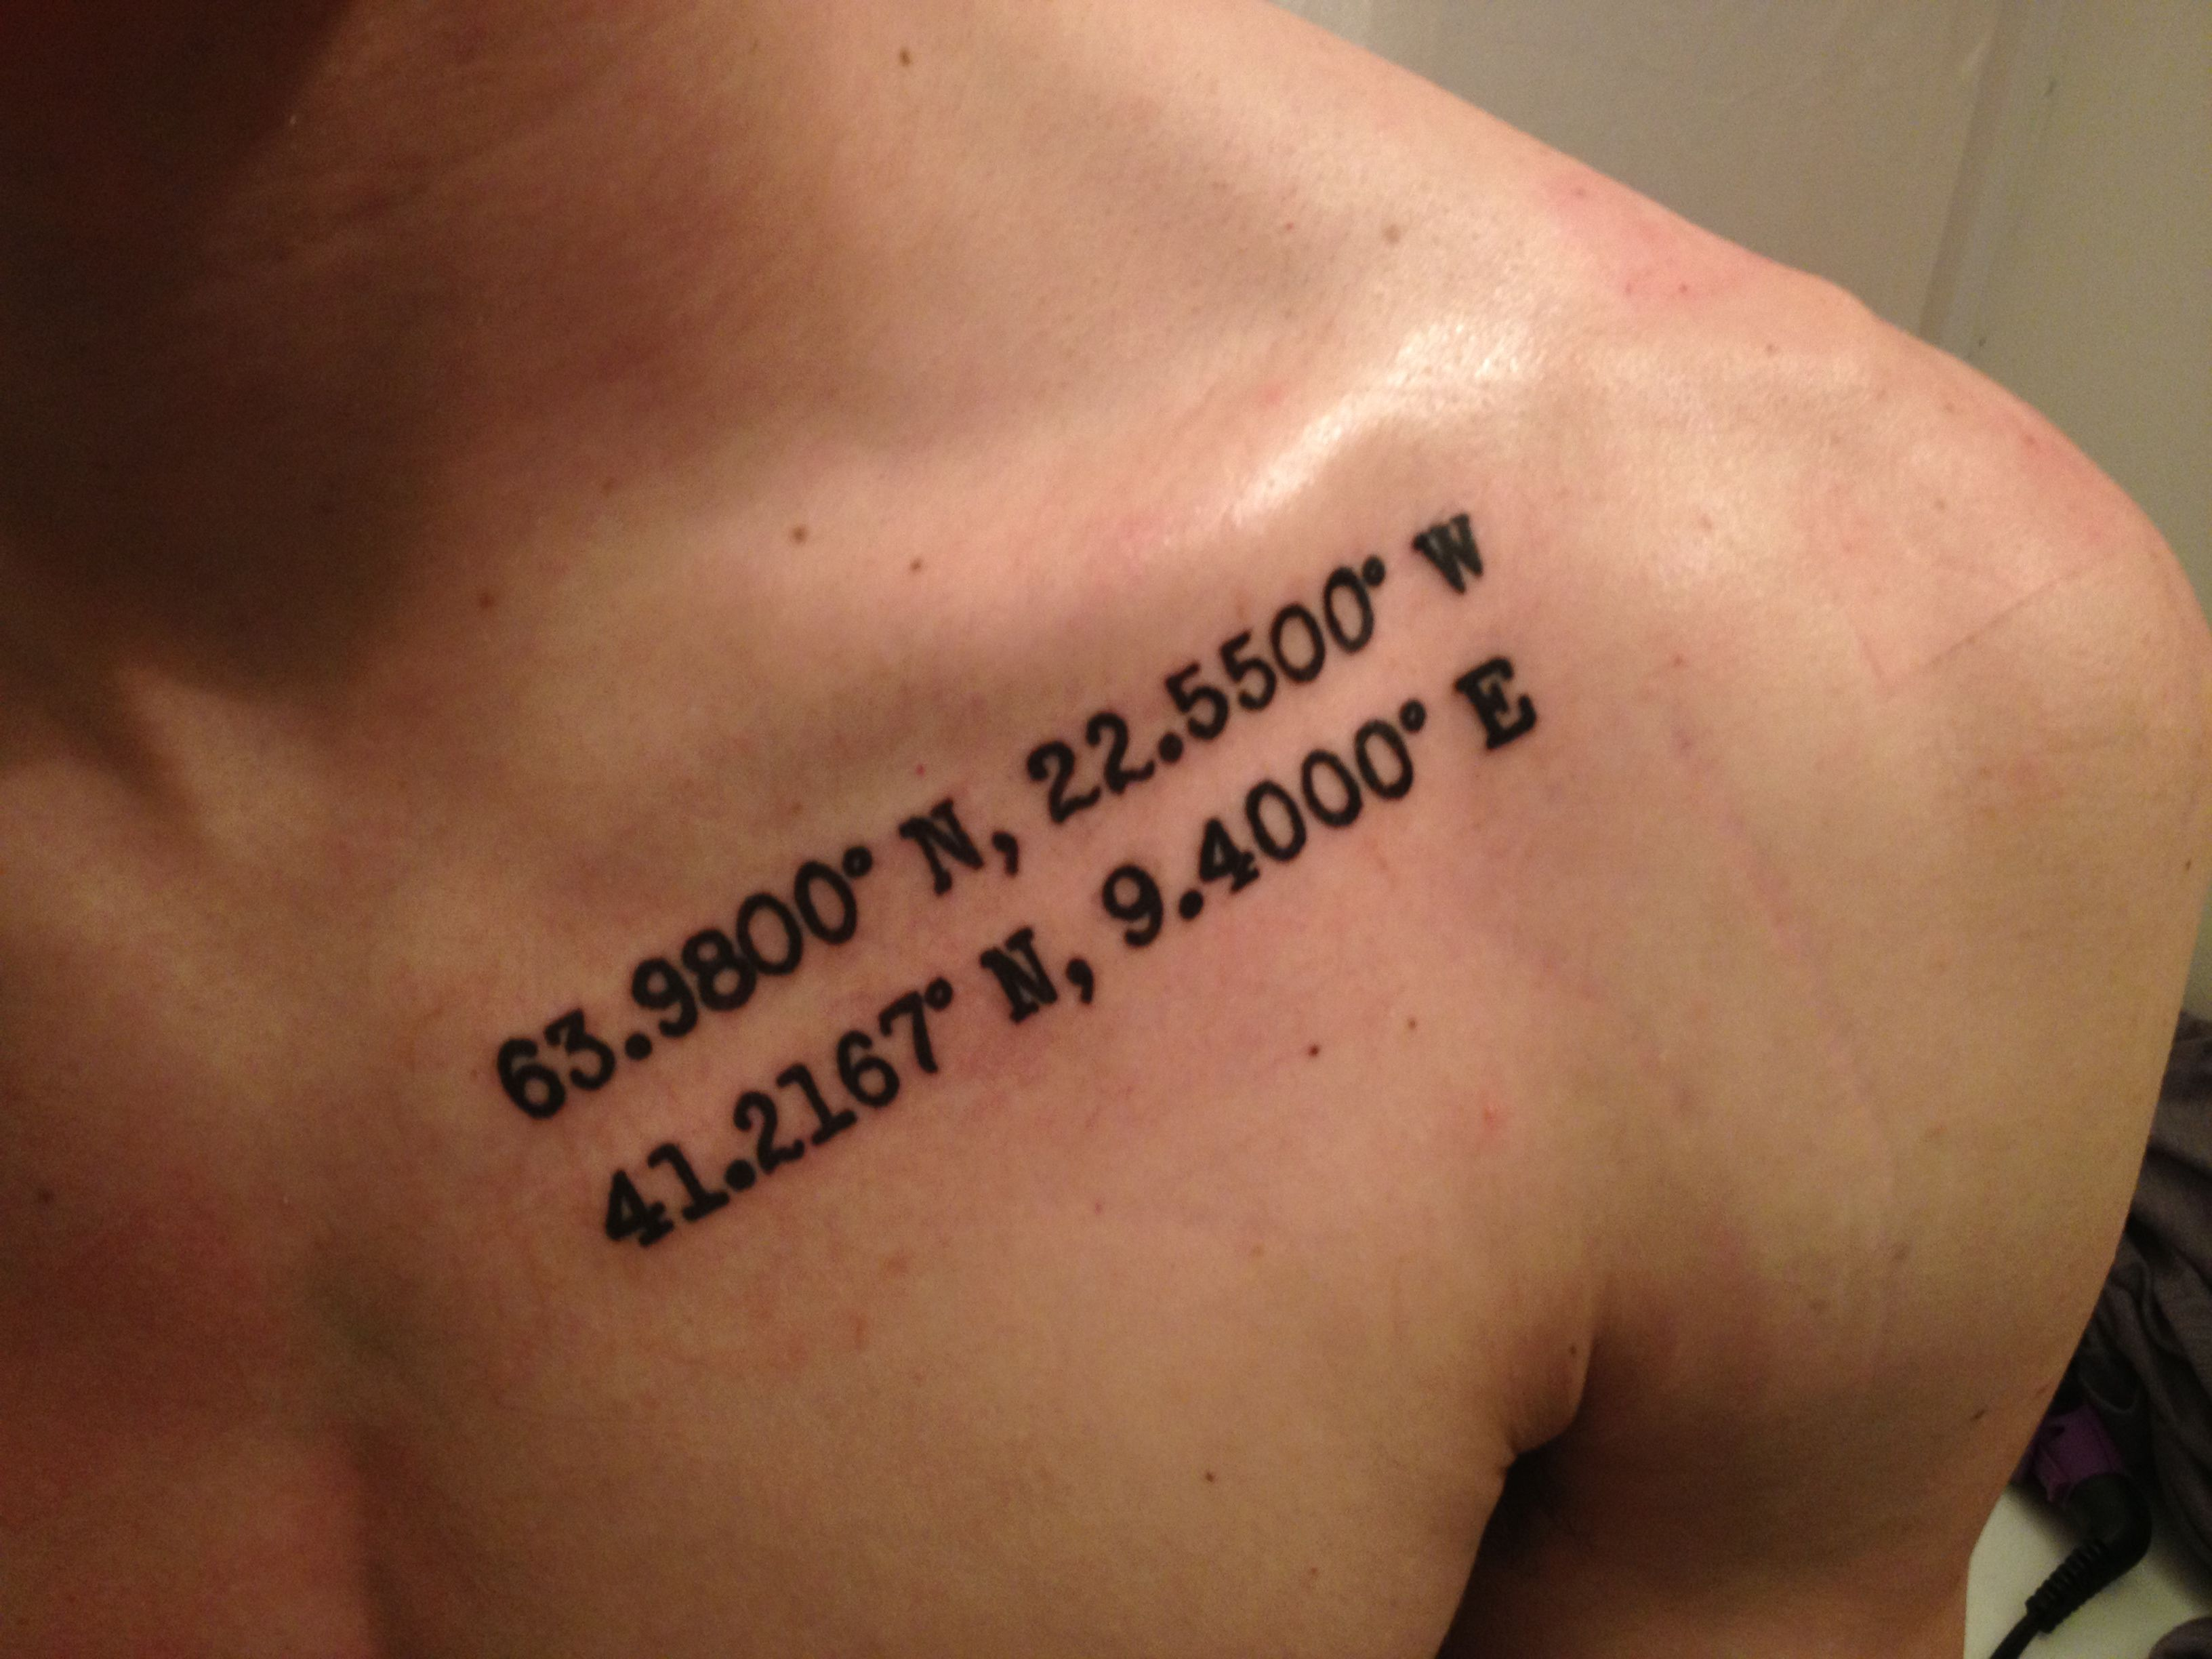 4021a2 italy tattoos designs - Best 25 Latitude Longitude Tattoo Ideas On Pinterest My Coordinates Coordinates Tattoo And Home Tattoo